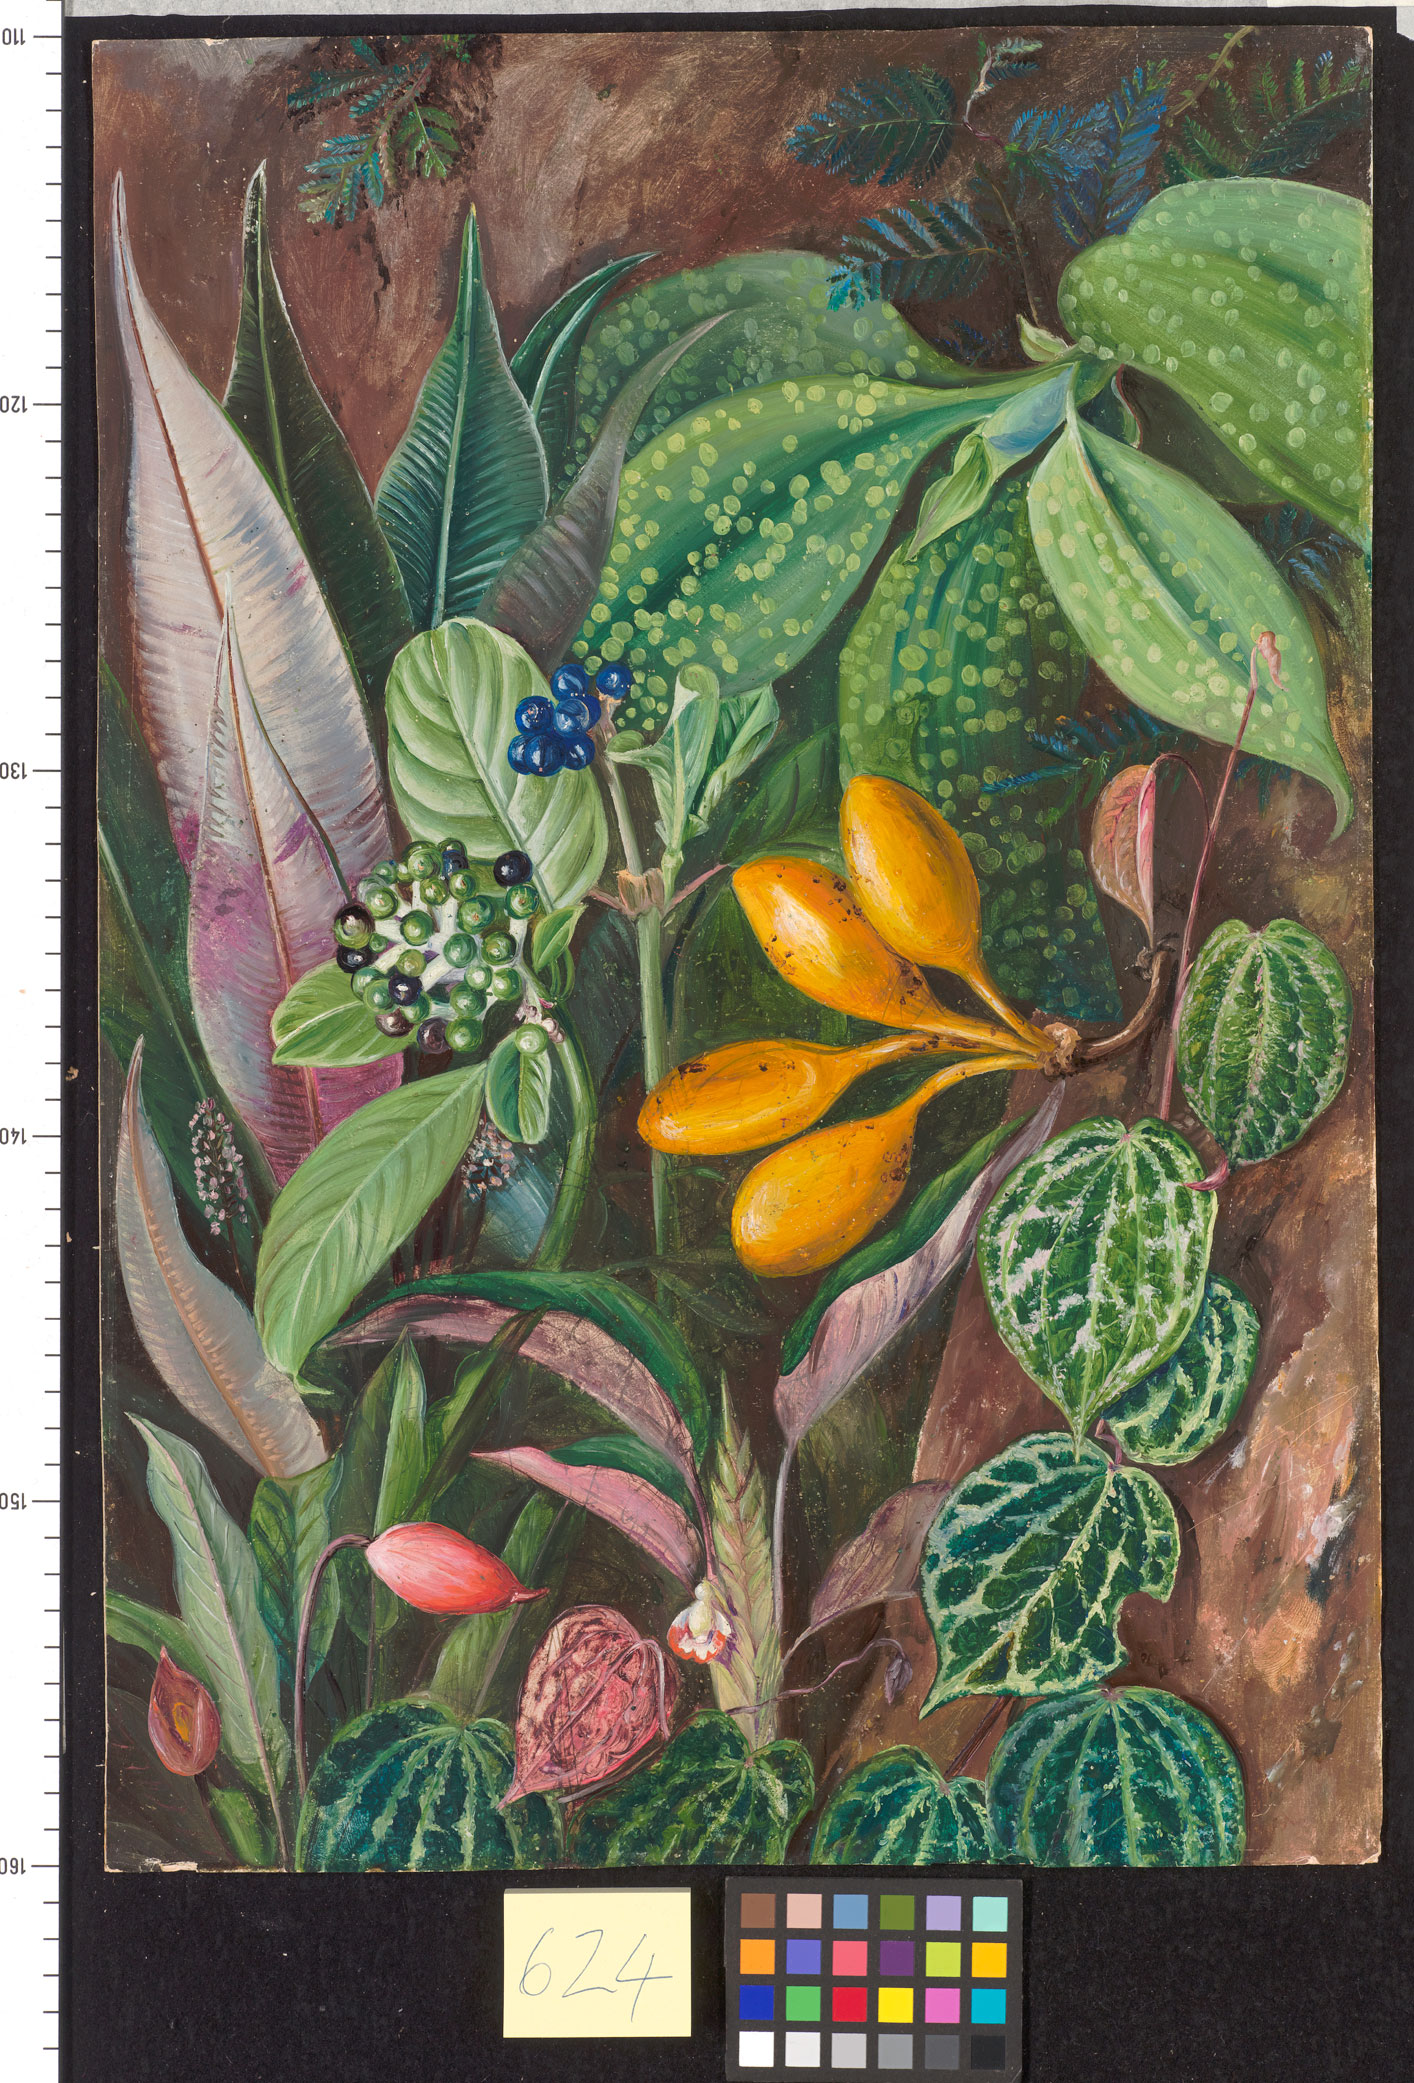 Full oil painting by Marianne North with the blue fruited shrub